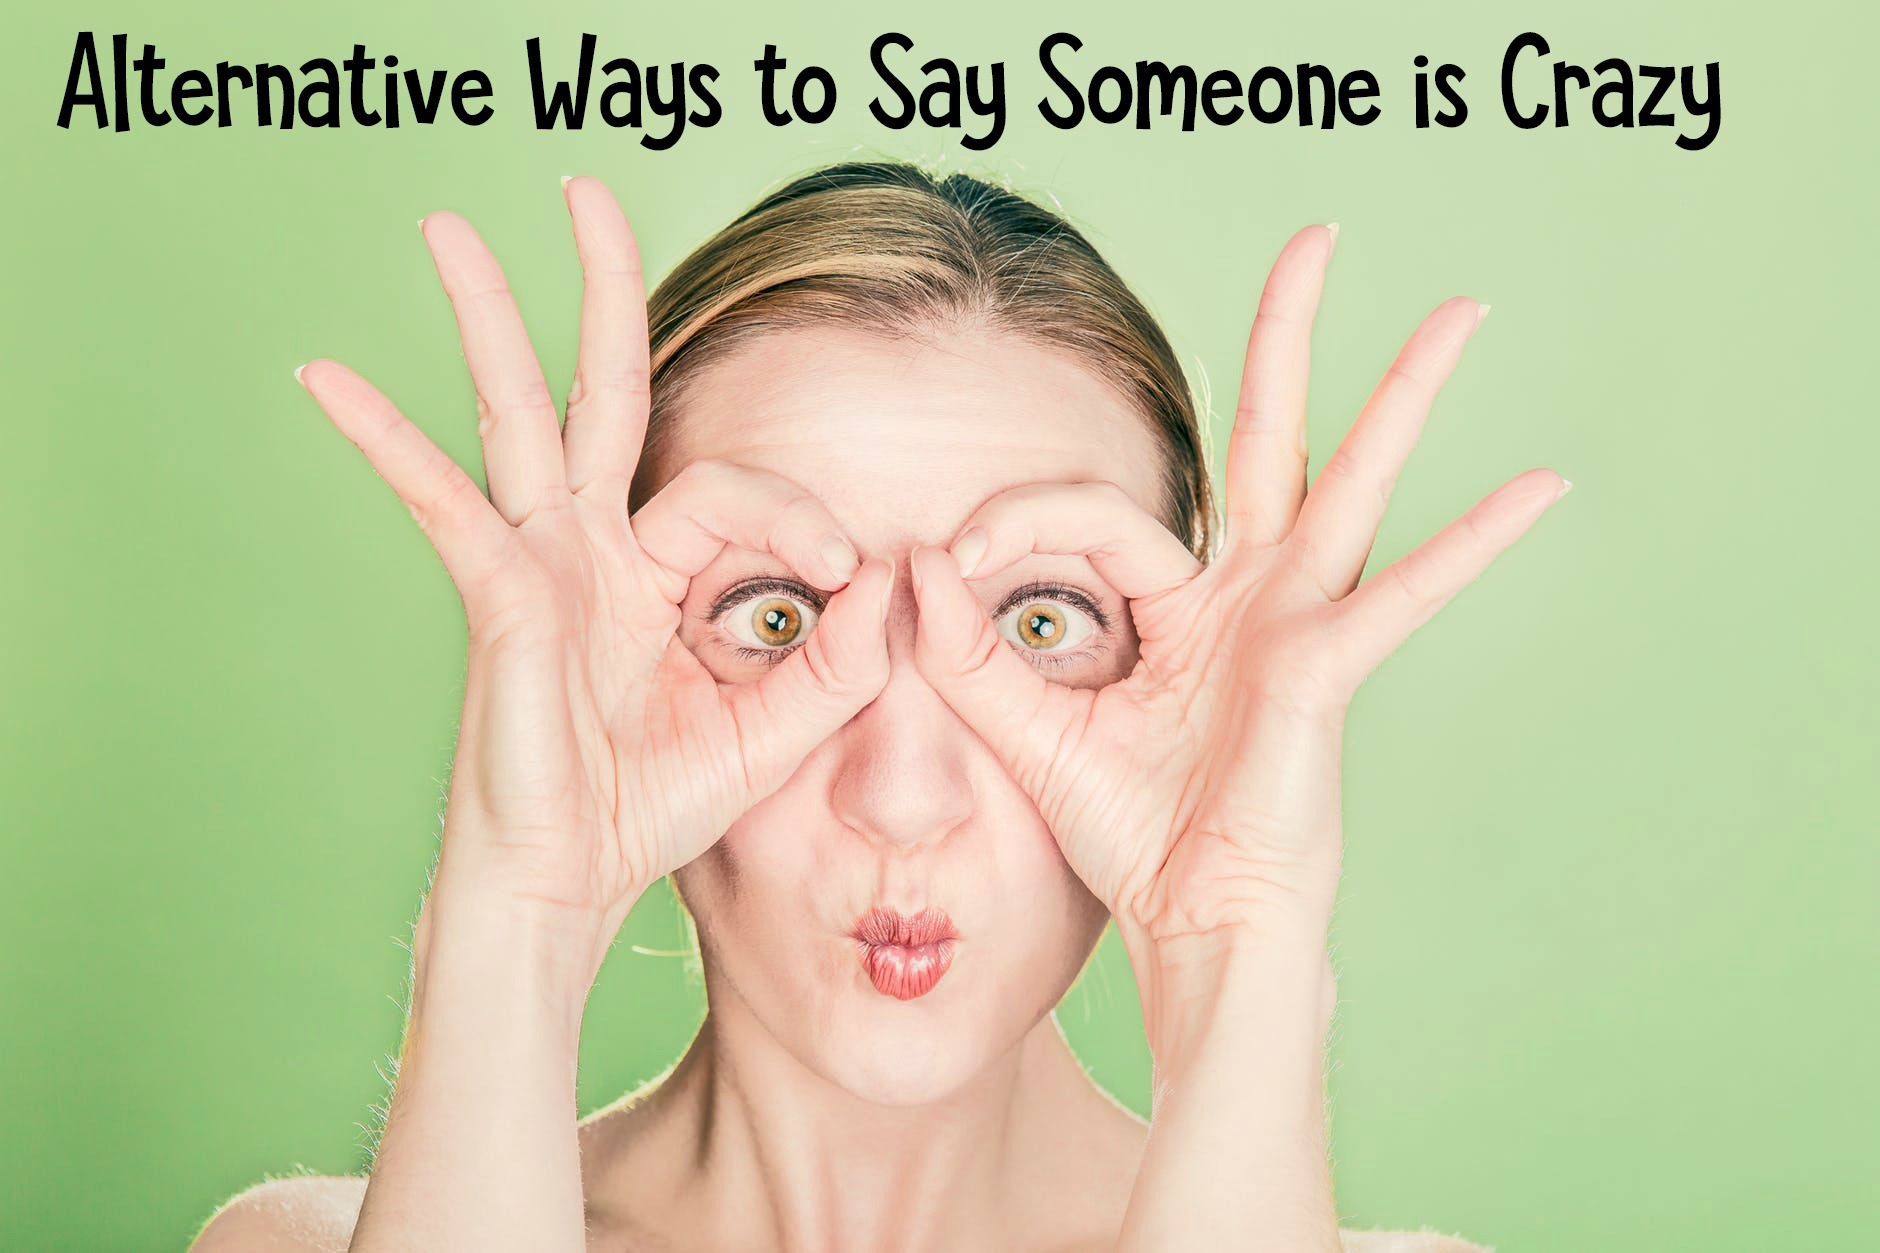 If you are looking for another way to say someone is crazy, here is a fun list for you of alternative ways to say that someone is crazy.